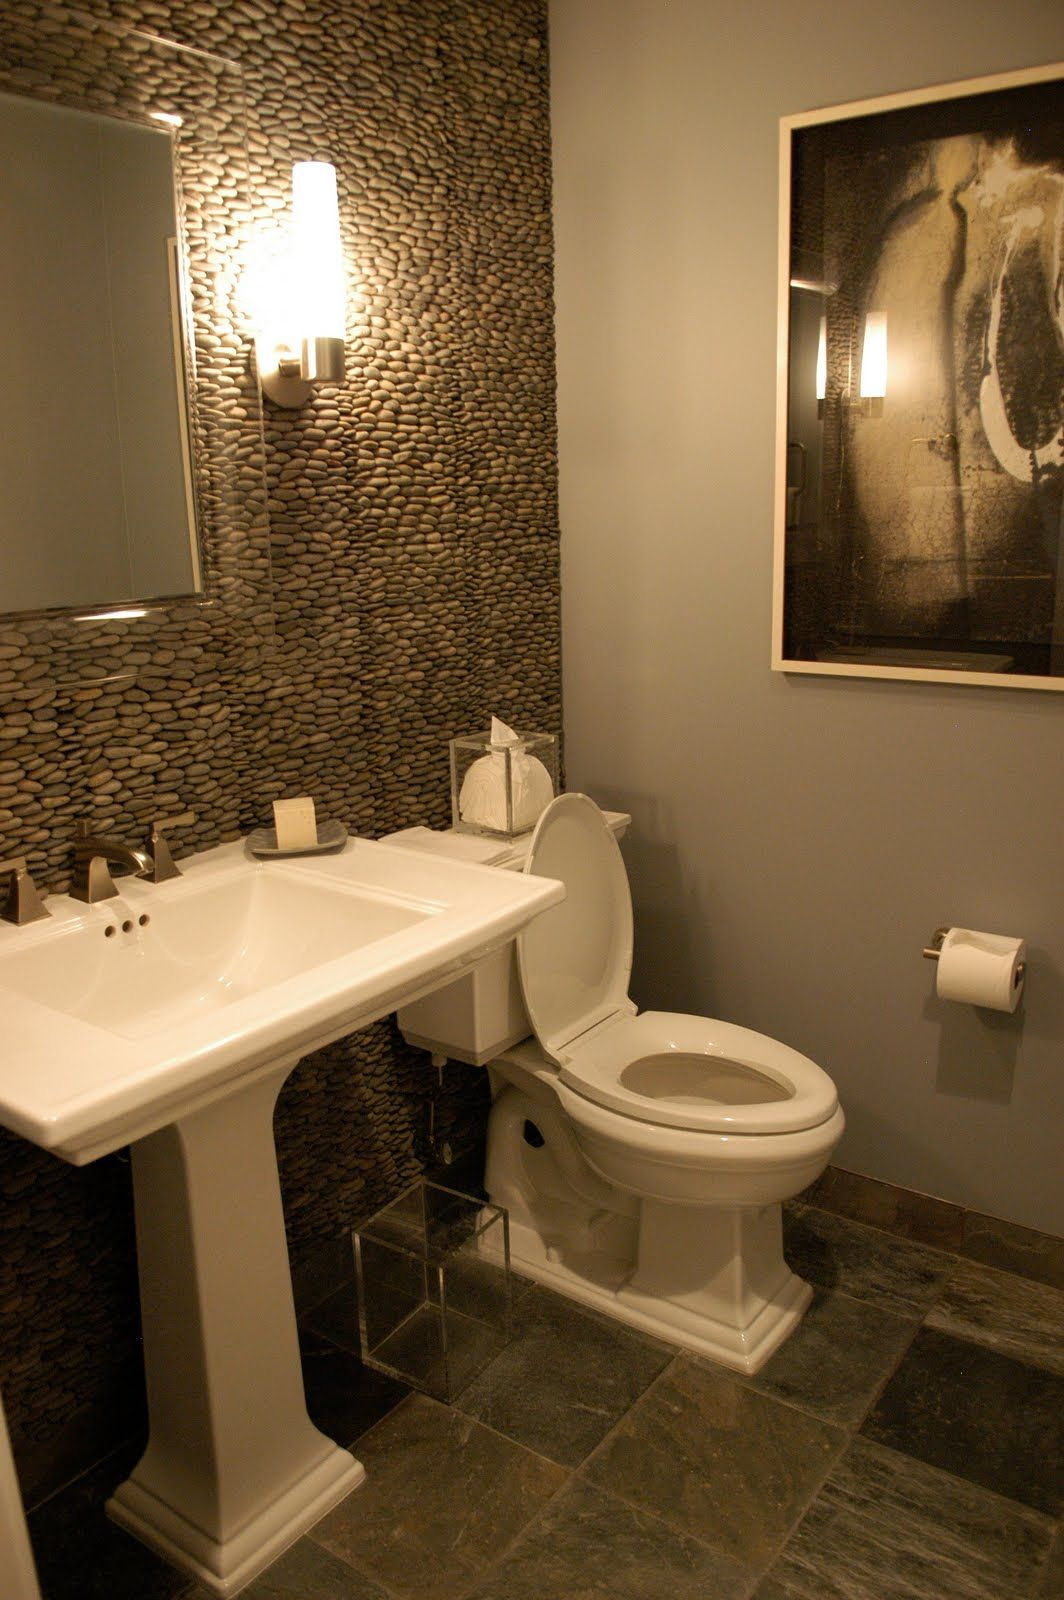 Powder Room Design Ideas save photo roomscapes cabinetry and design center 22 reviews powder rooms small bath ideas Small Powder Room Ideas The Living Room In Amyes Recent Trump Tower Project